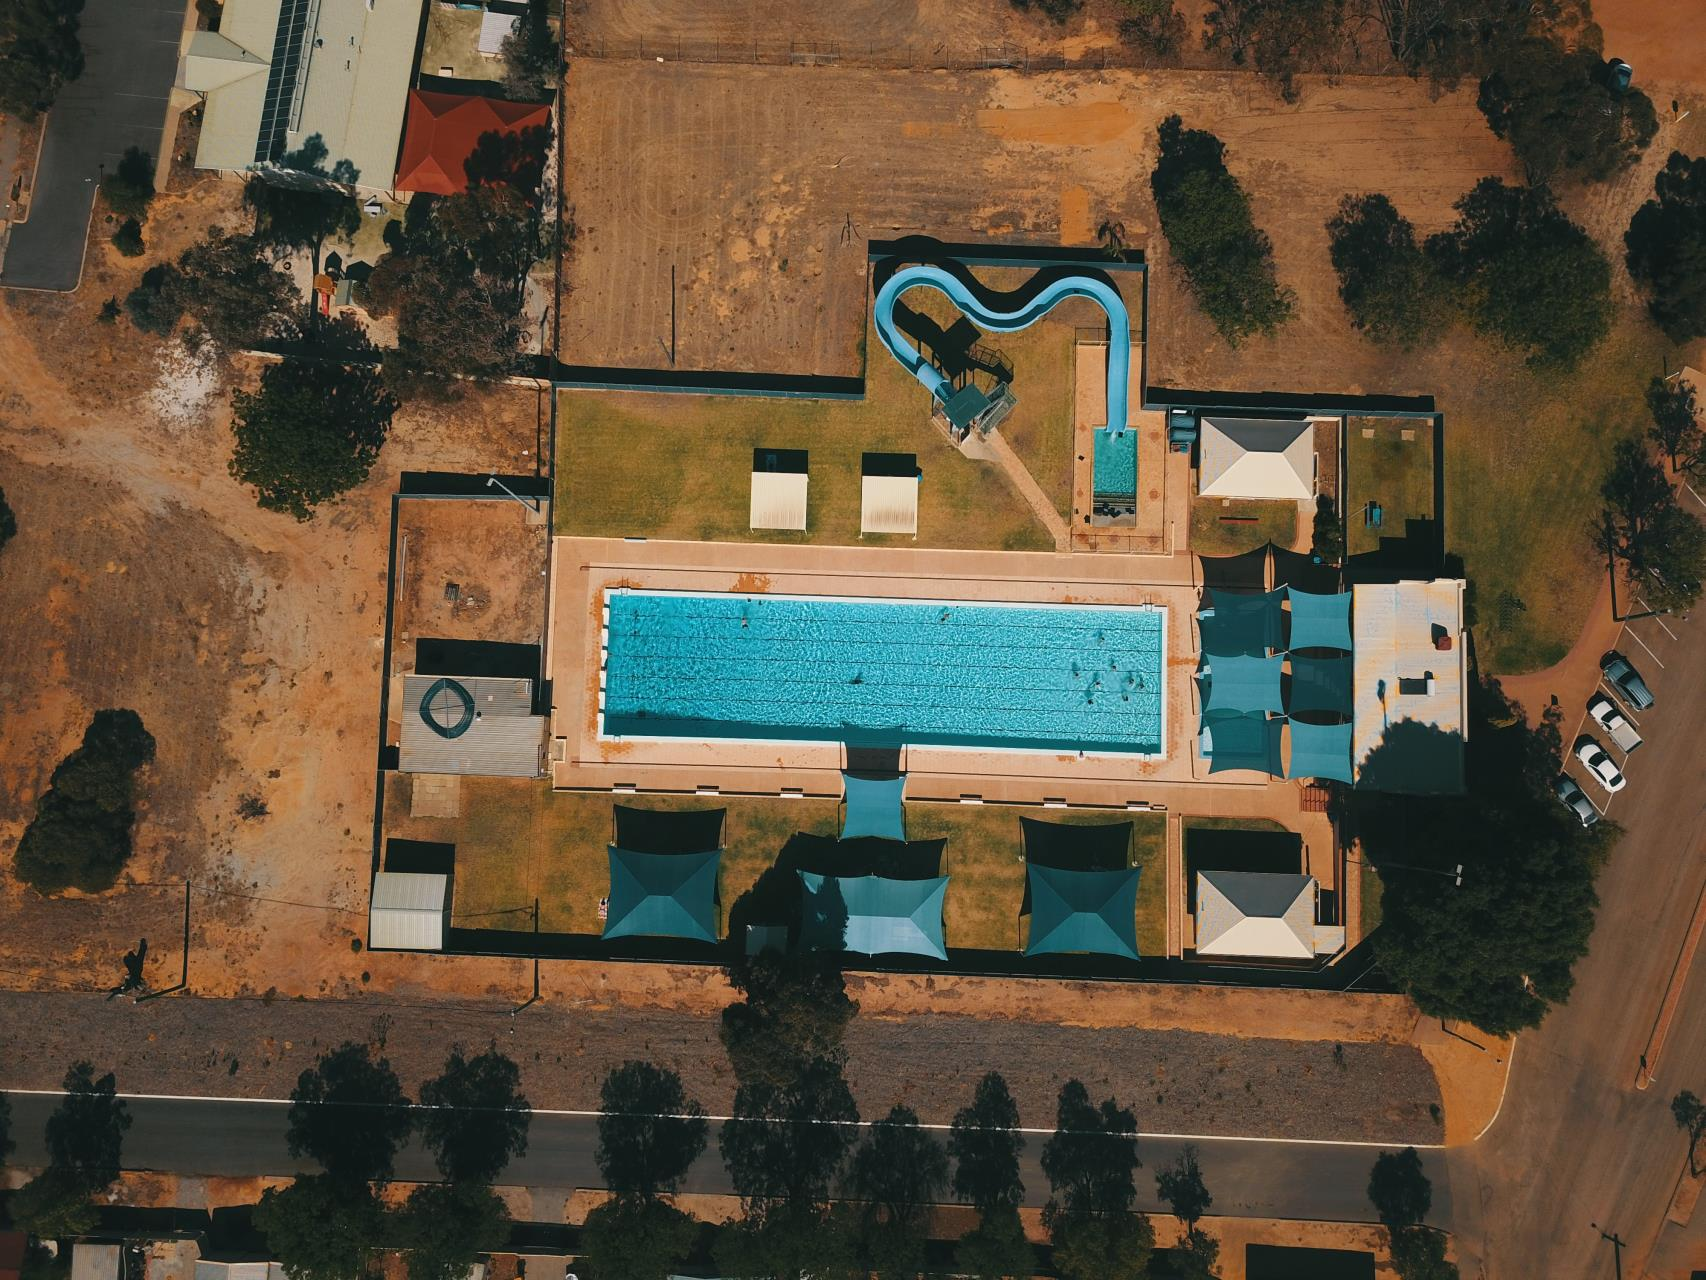 Merredin District Olympic Pool Receives Gold